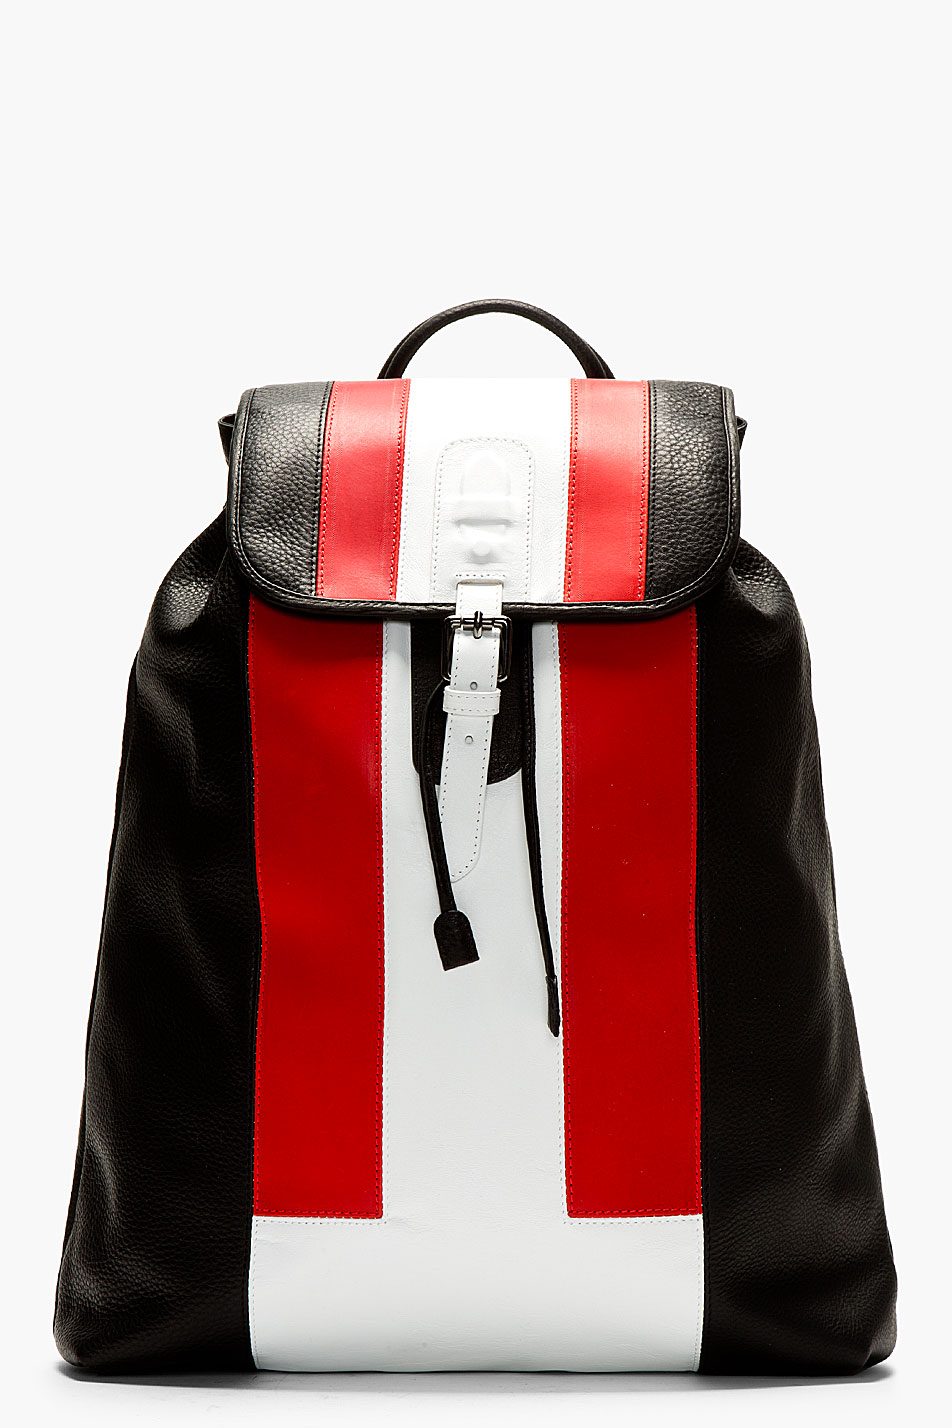 Neil Barrett Black Leather Colorblocked Backpack In Red